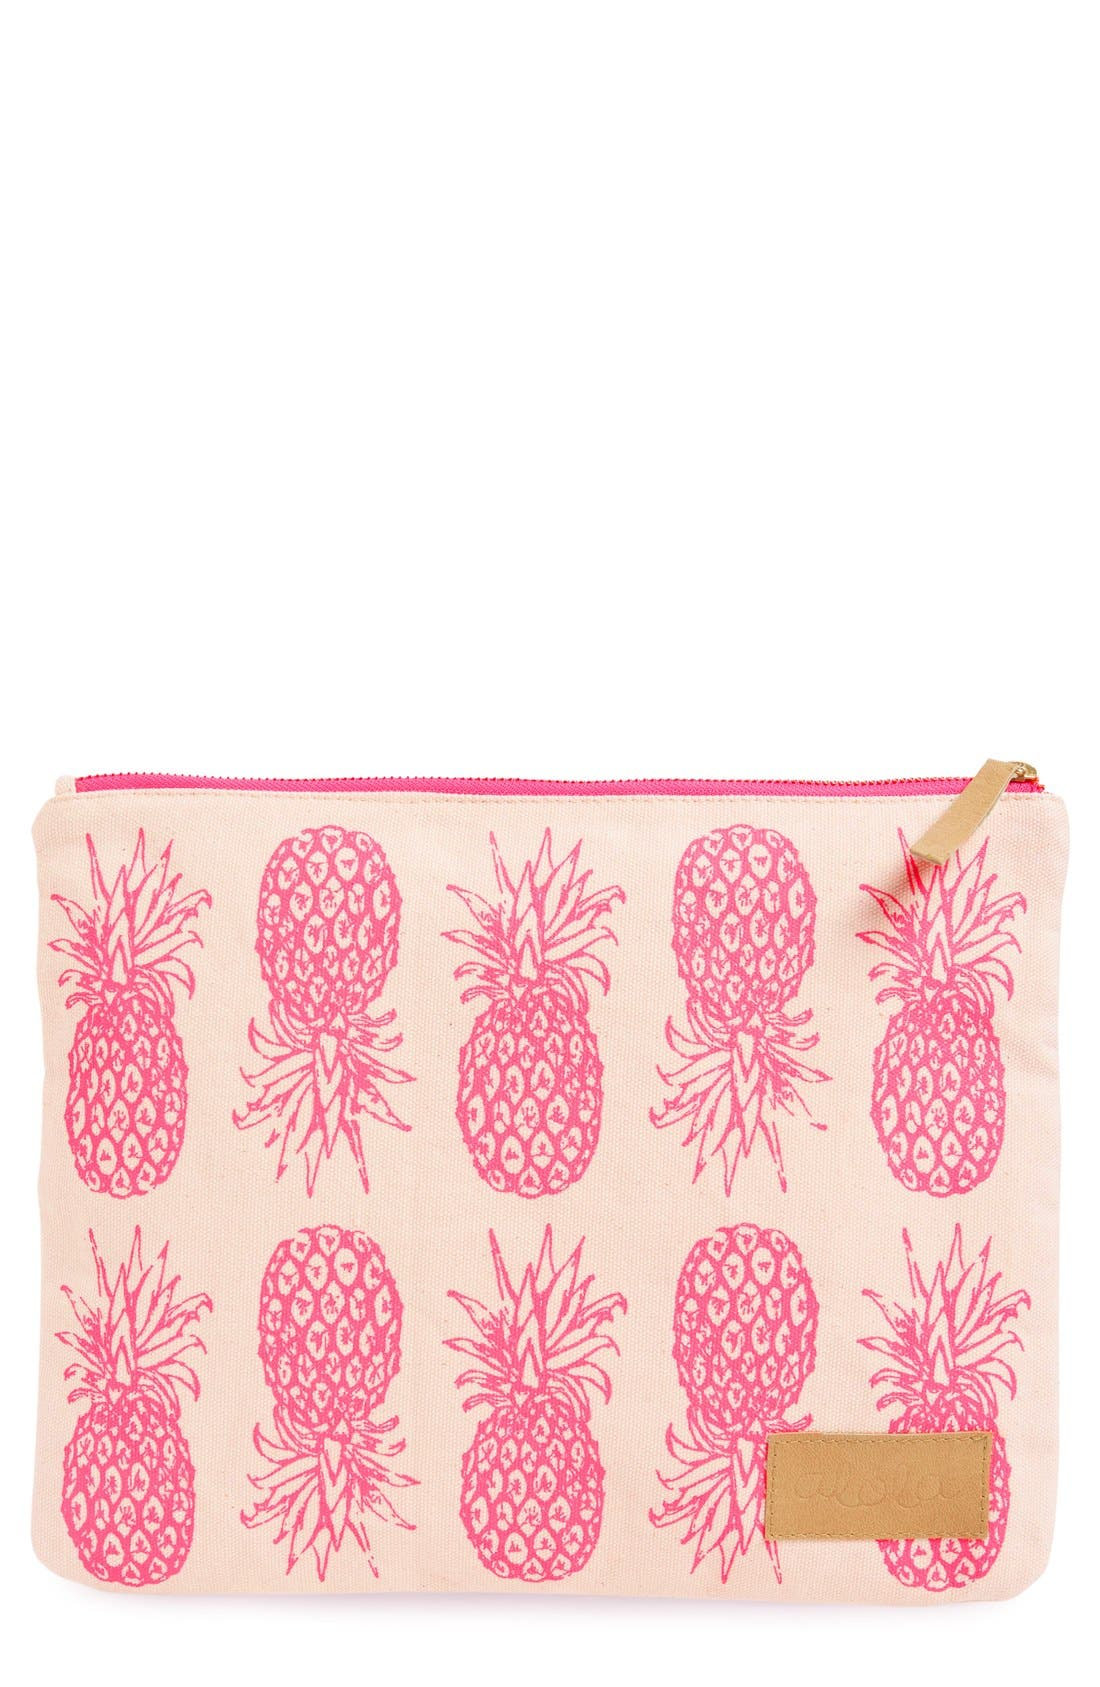 Alternate Image 1 Selected - alola Pineapple Print Canvas Clutch